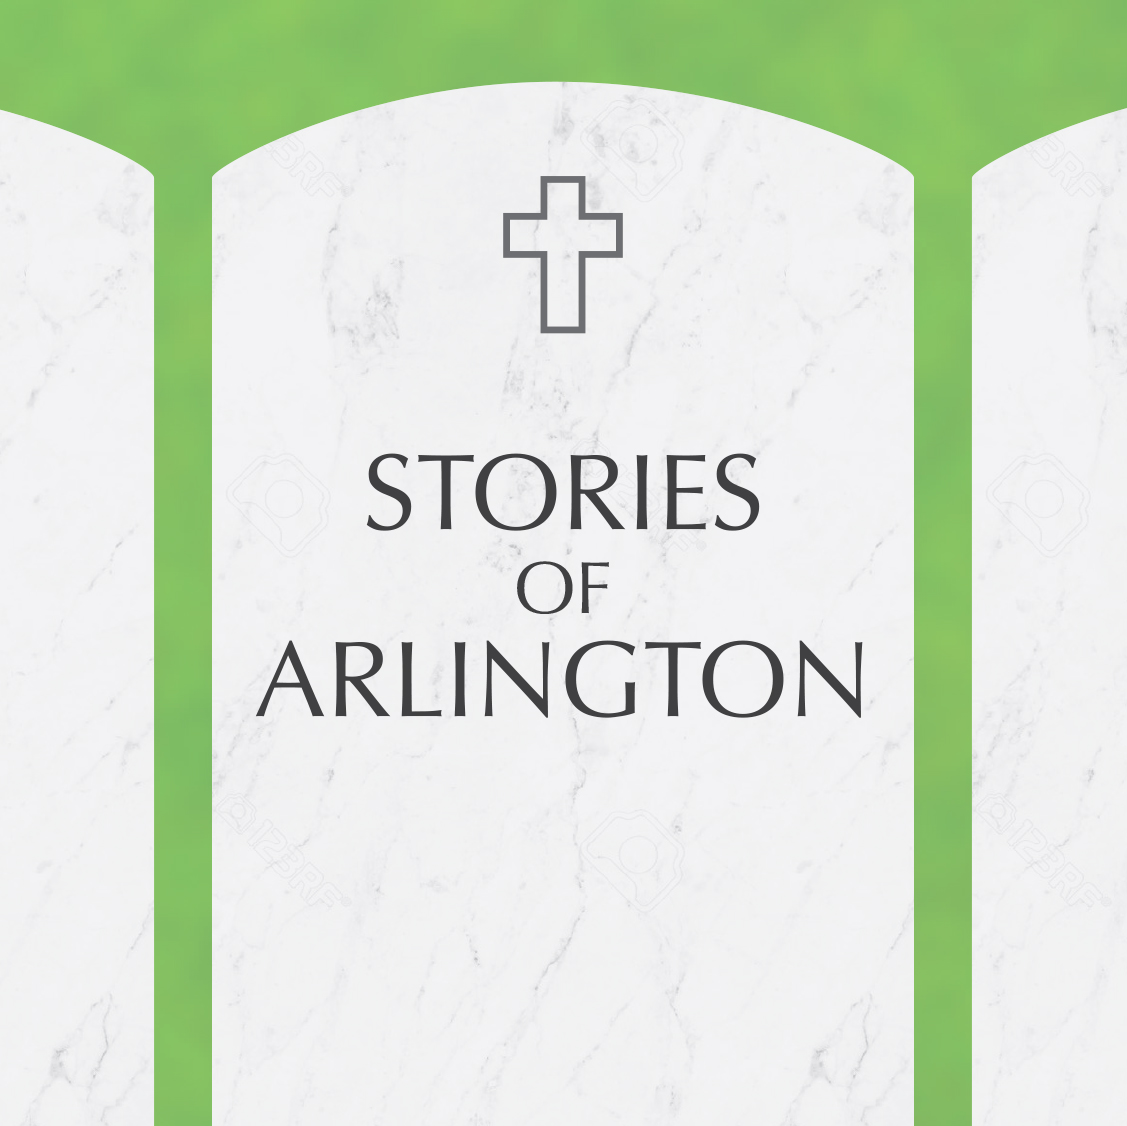 Stories of Arlington